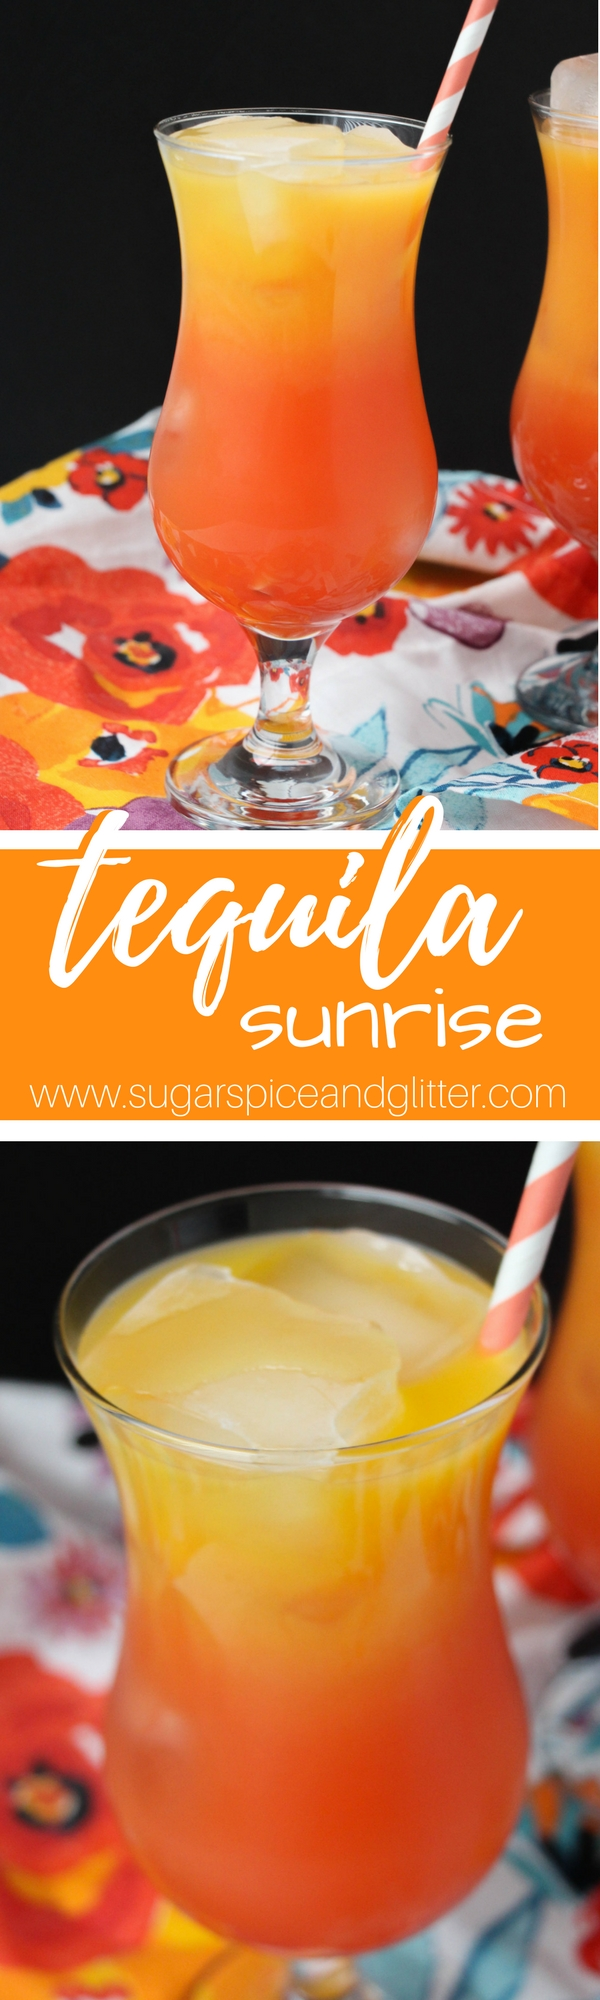 A tequila cocktail for people who don't like tequila- serve this Tequila Sunrise at your next party. A fresh and fruity tropical drink